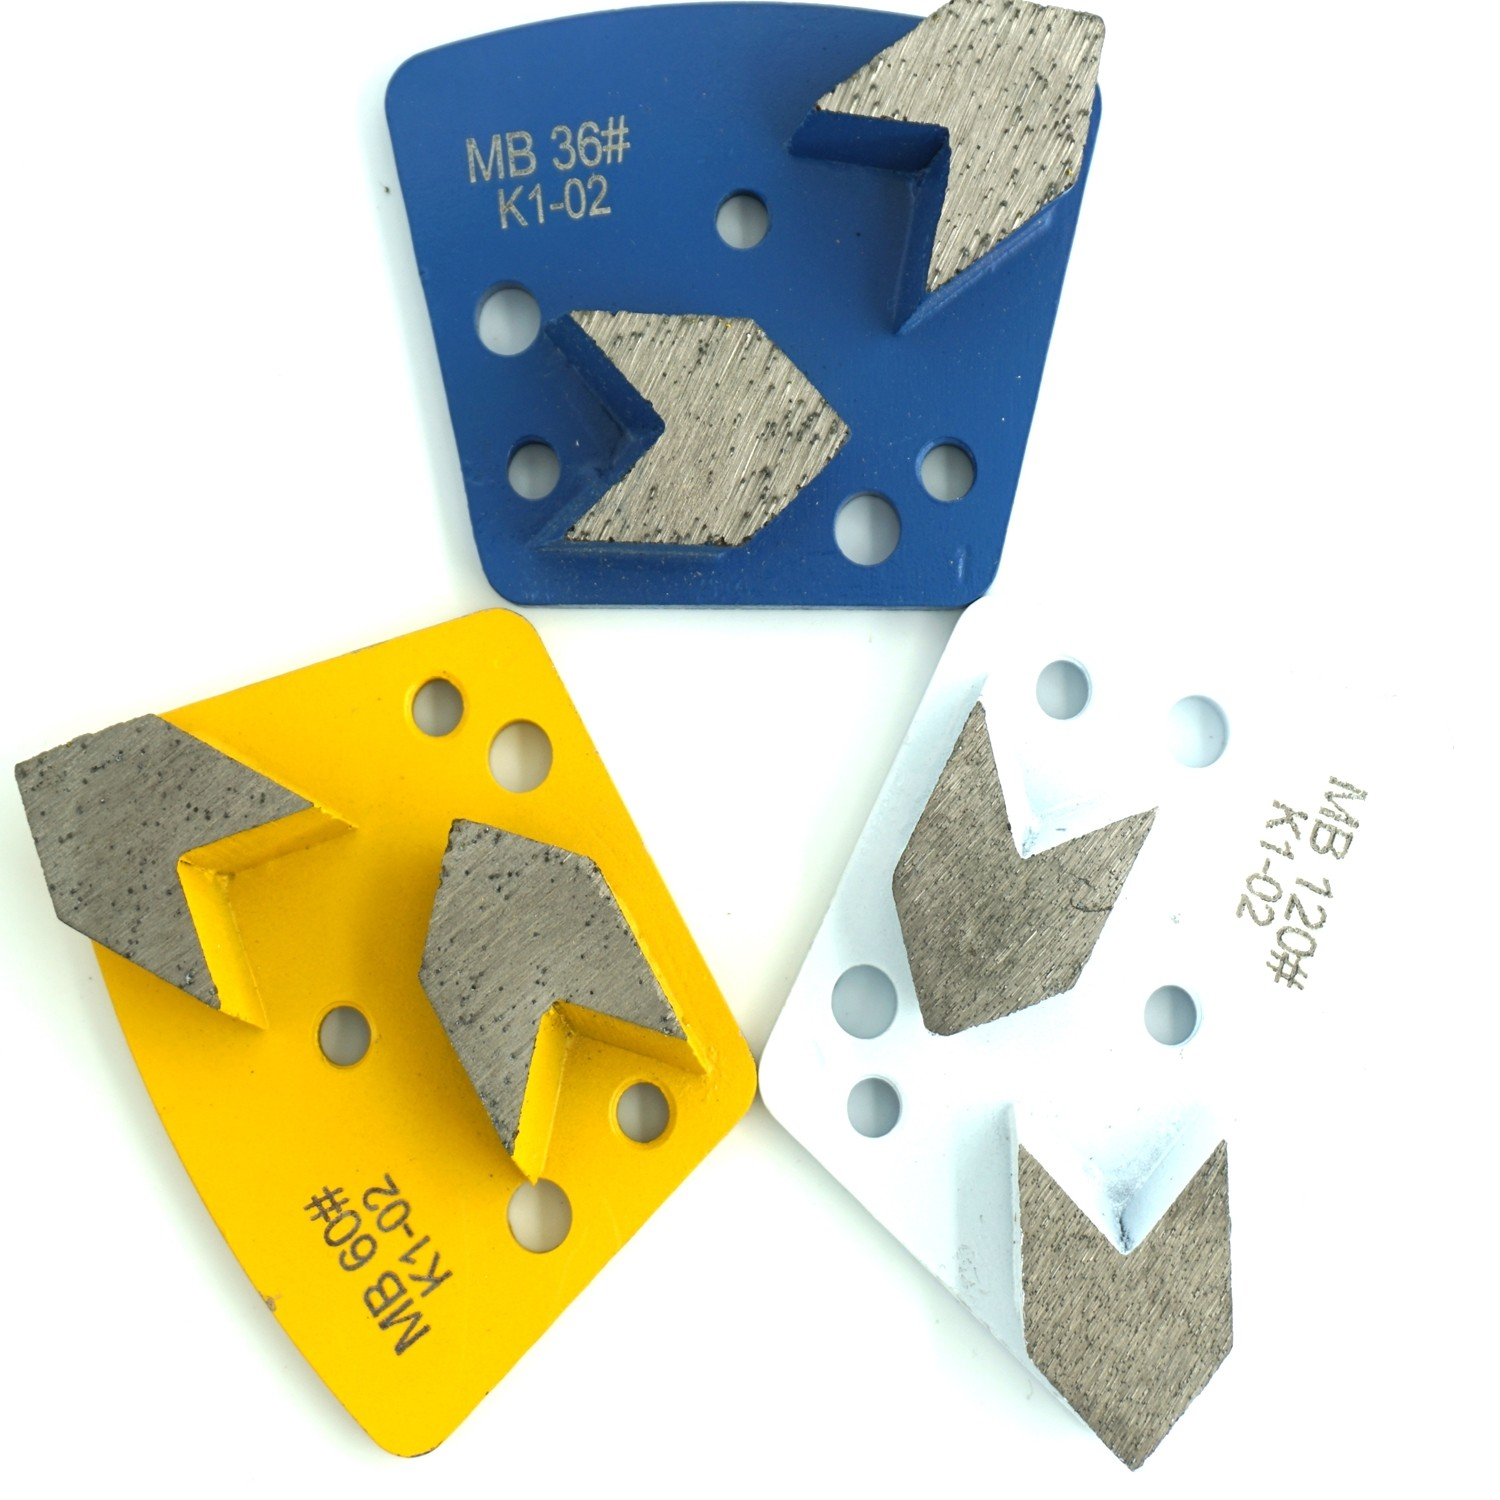 Trapezoid Arrow Grinding Plates - Right(Clockwise)